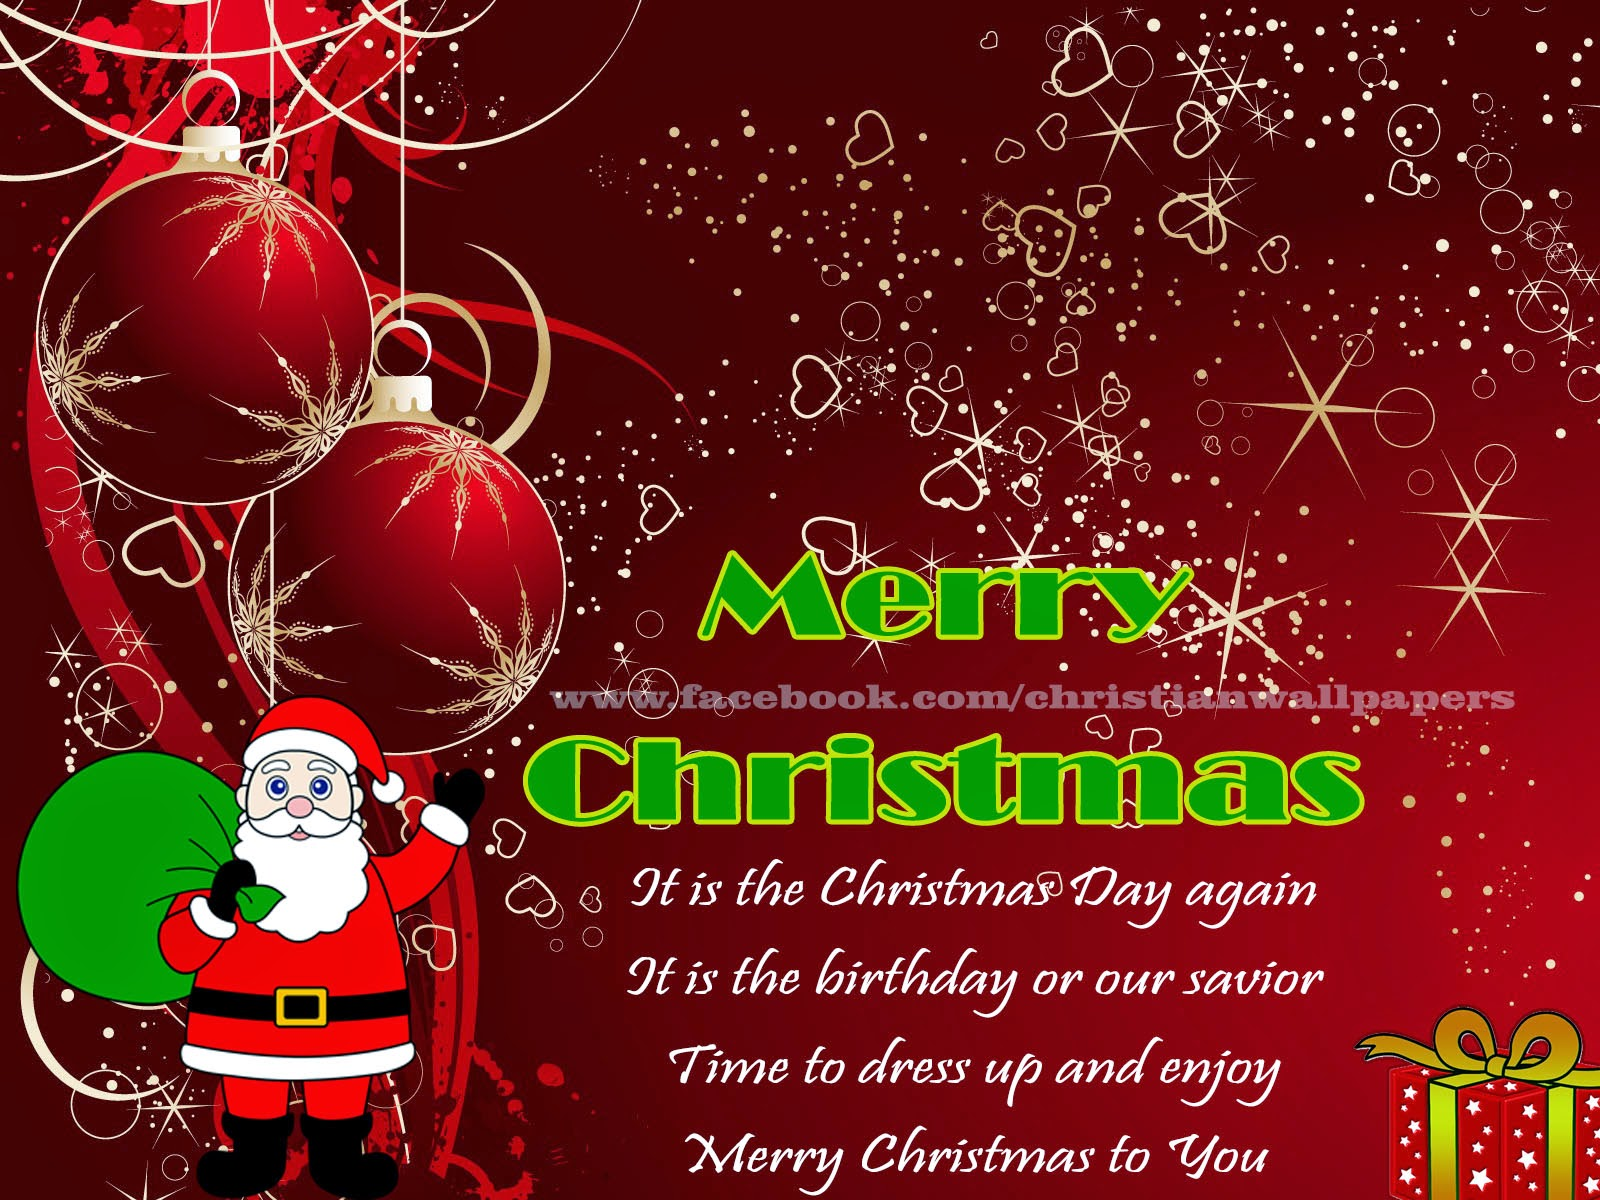 Download hd christmas new year 2018 bible verse greetings card merry christmas greetings card m4hsunfo Image collections